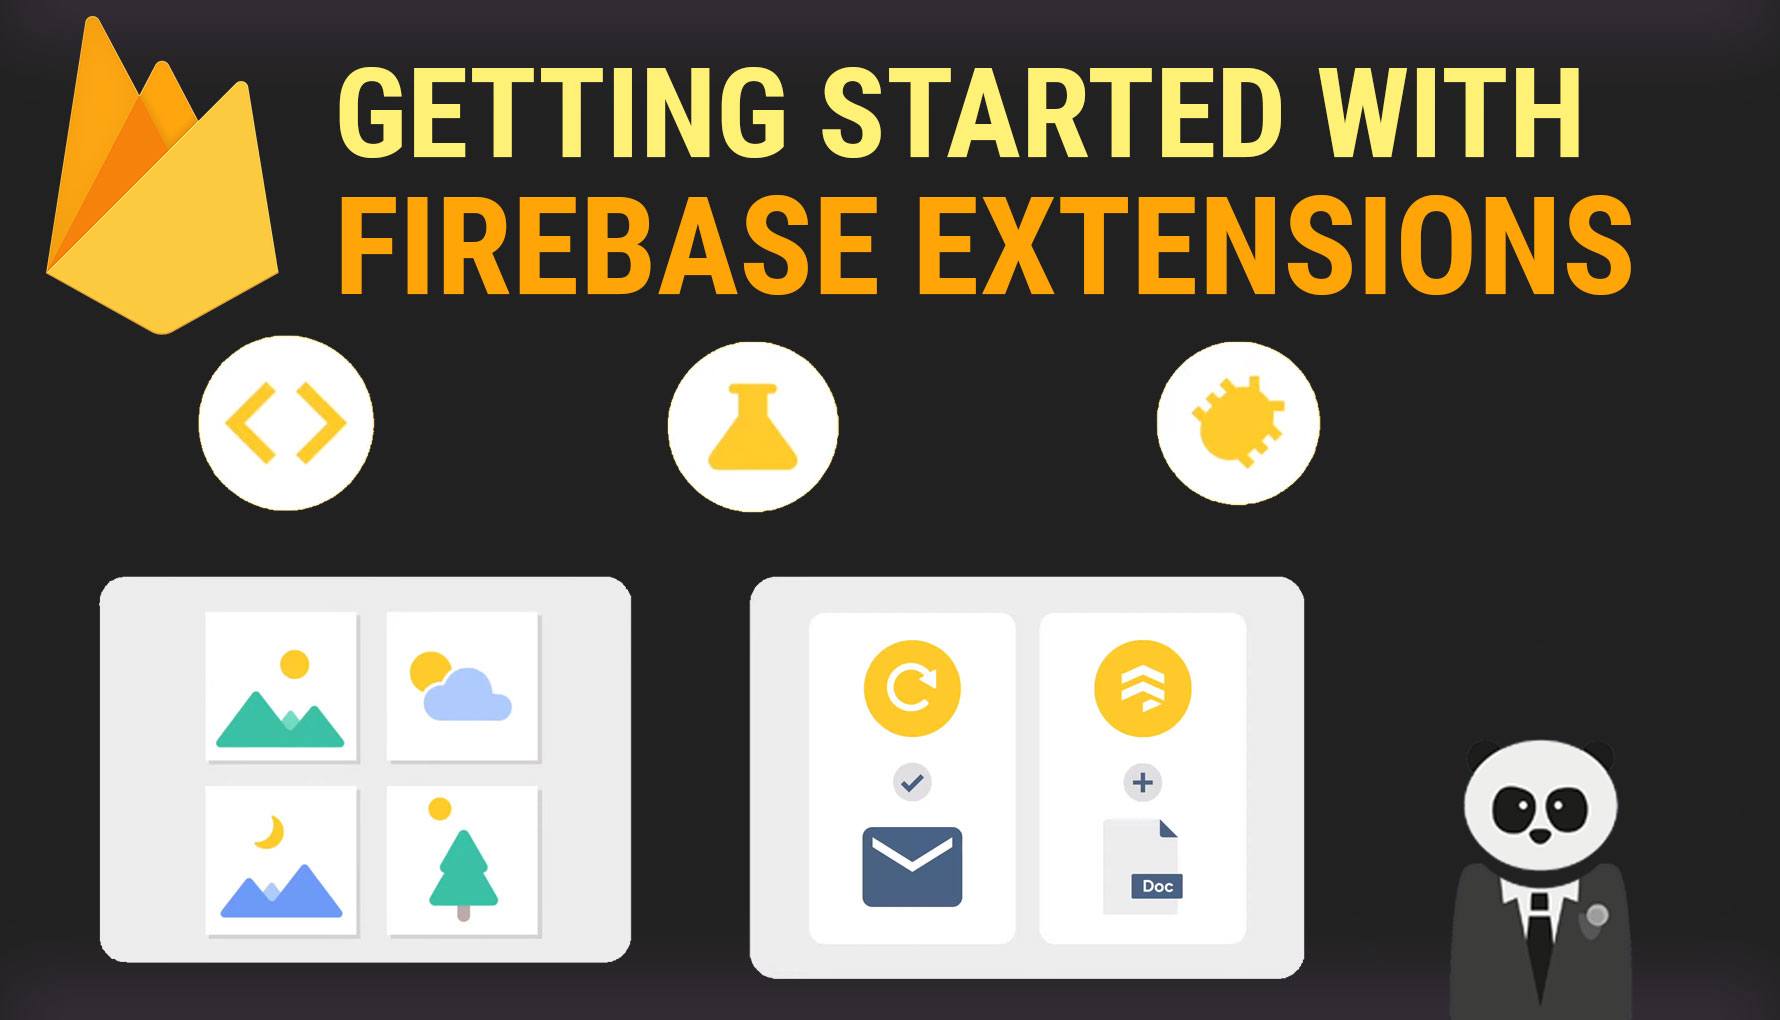 Getting Started with Firebase Extensions for Android (Firebase Console Edition)